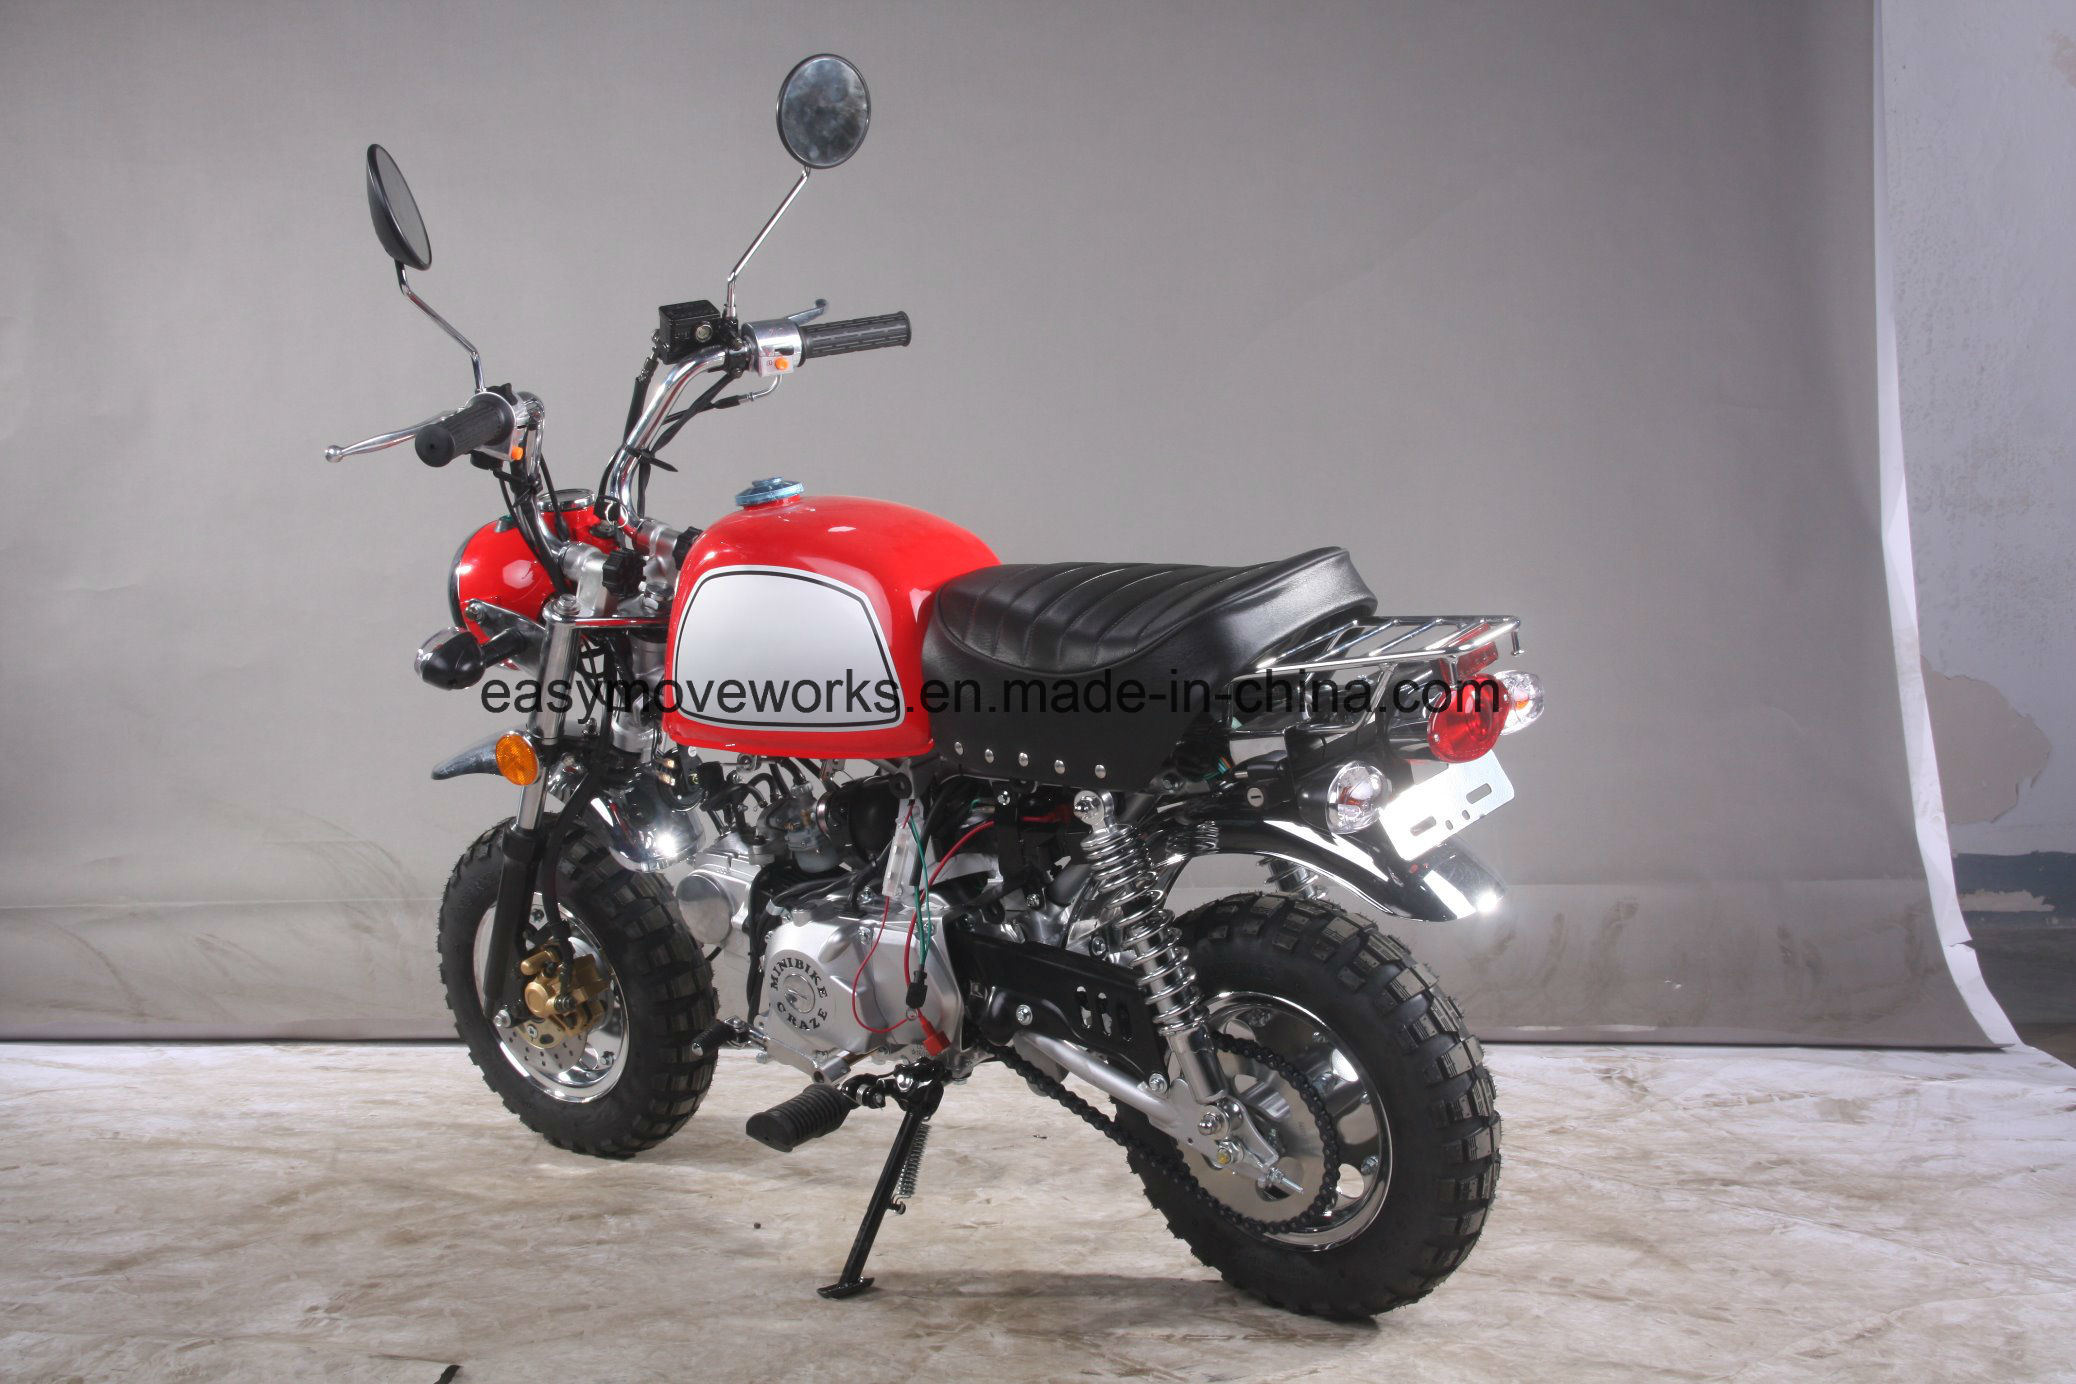 Zhenhua Classic Motorcycle Monkey Bike Euro 4 50cc Big Tank